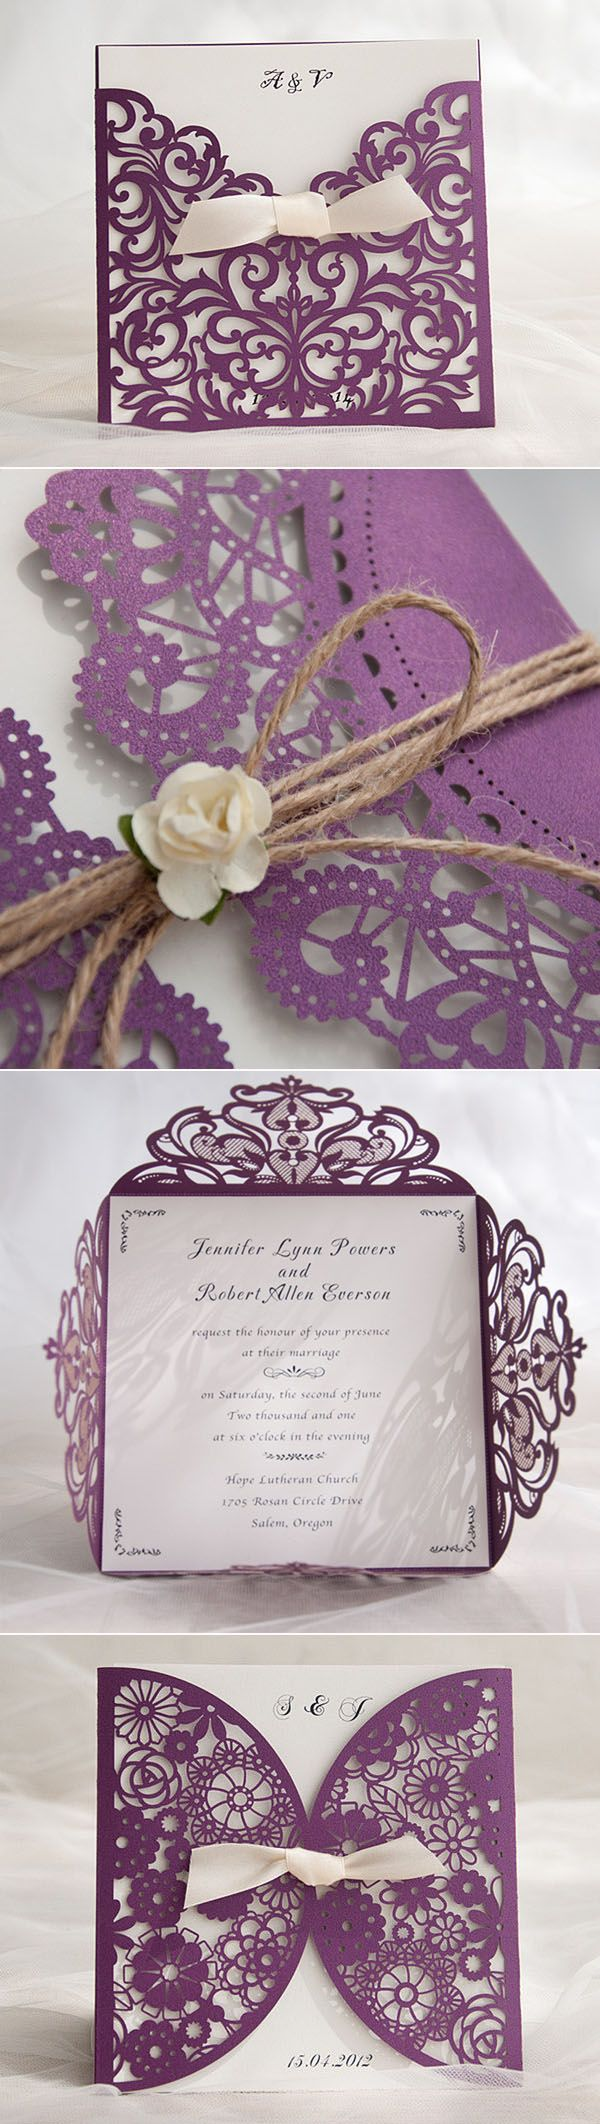 10 Hottest Wedding Invitation Trends for 2016